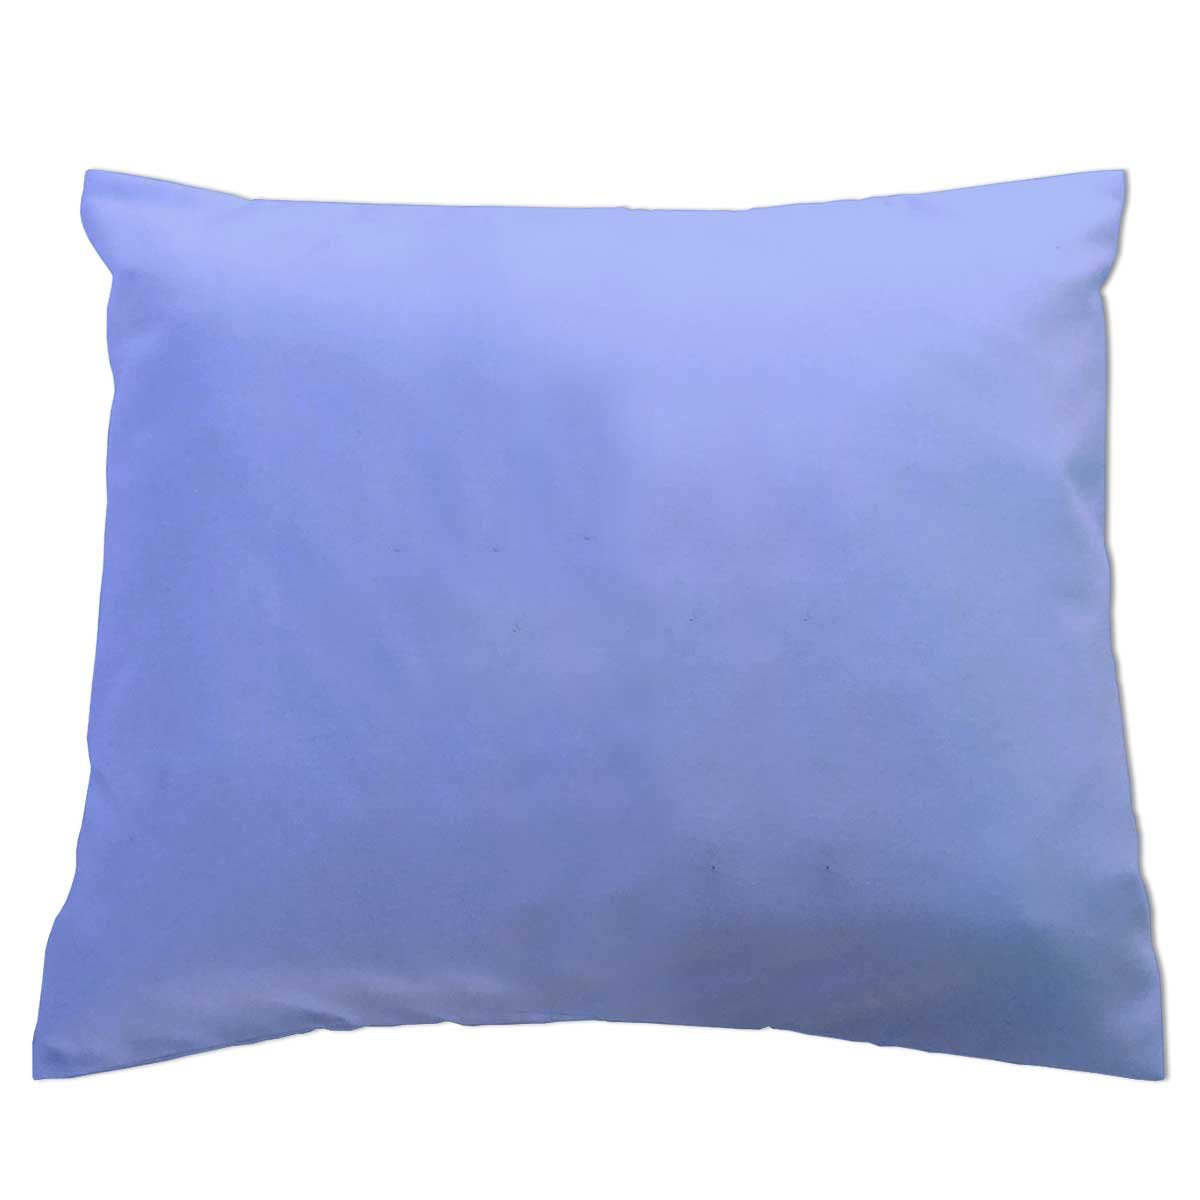 SheetWorld - Baby Pillow Case - Percale Pillow Case - Light Solids - Baby Blue - Made In USA